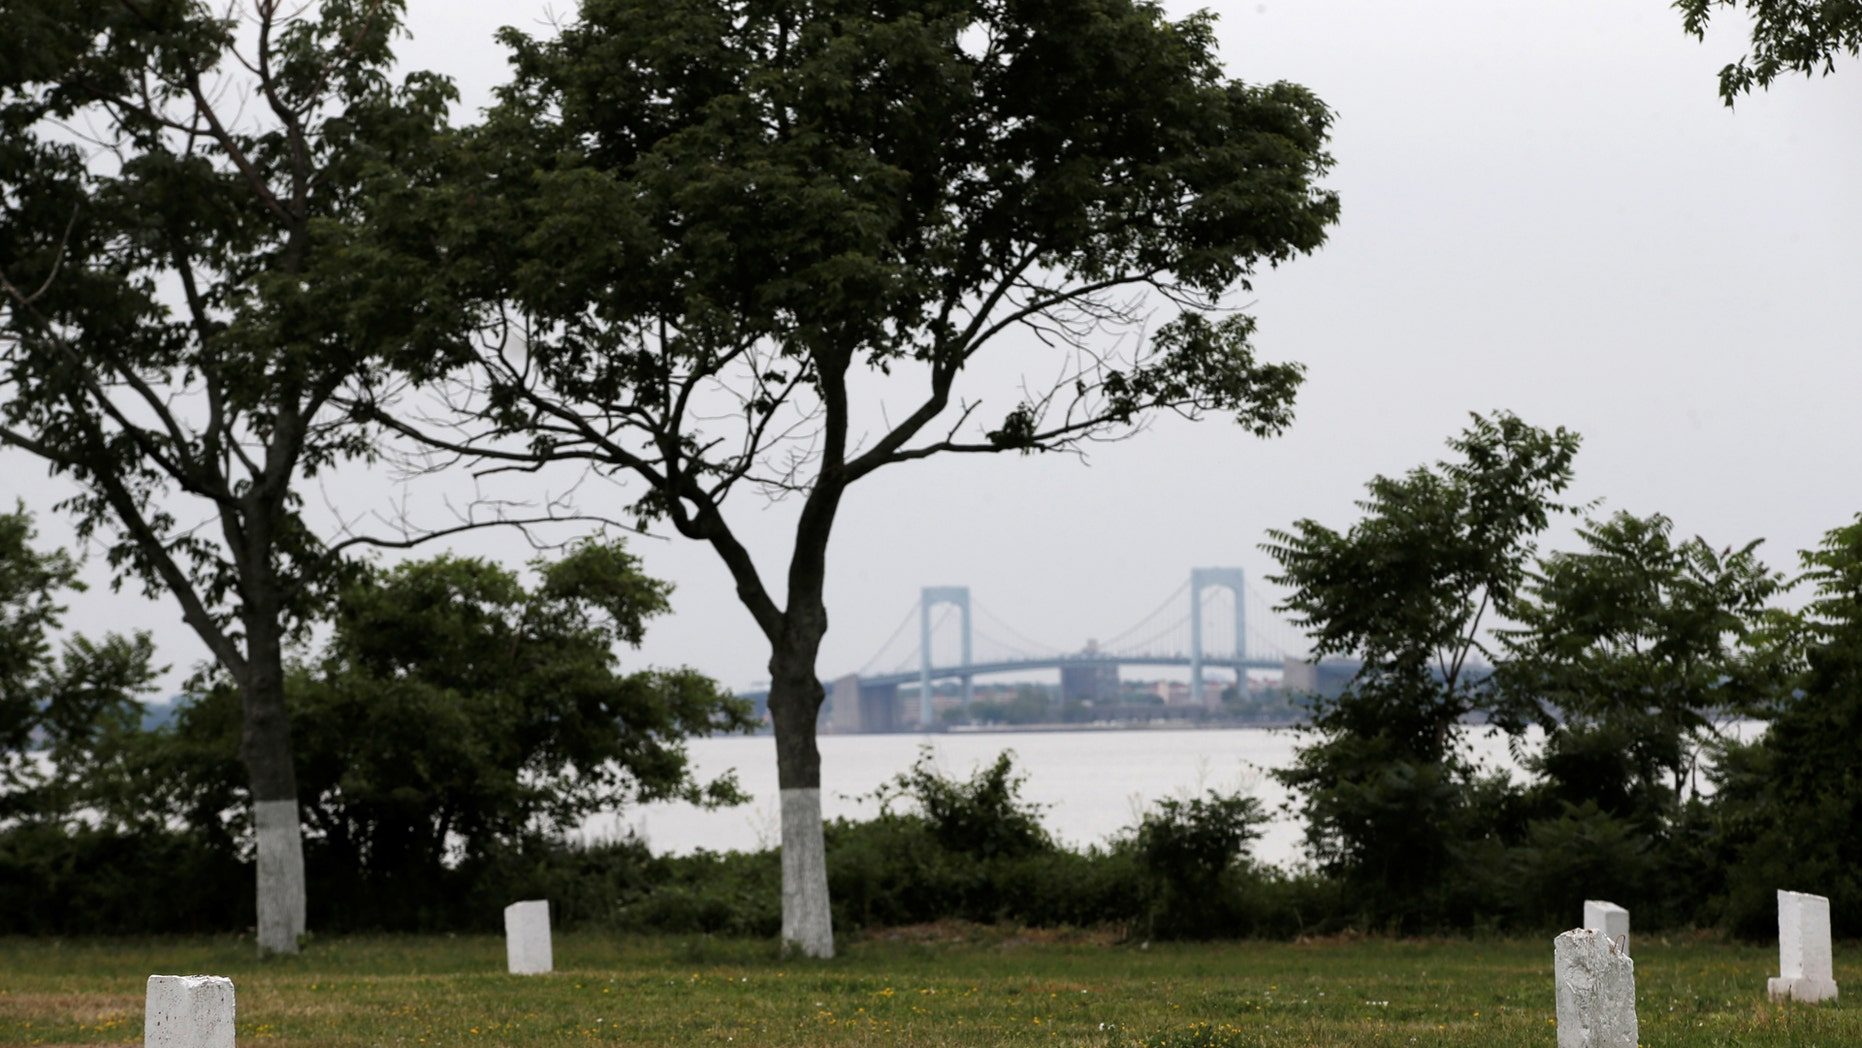 File photo: Stones mark mass graves on Hart Island, the former location of a prison and hospital that is a potter's field burial site of as many as one million people, in New York, United States, June 23, 2016. (REUTERS/Mike Segar)